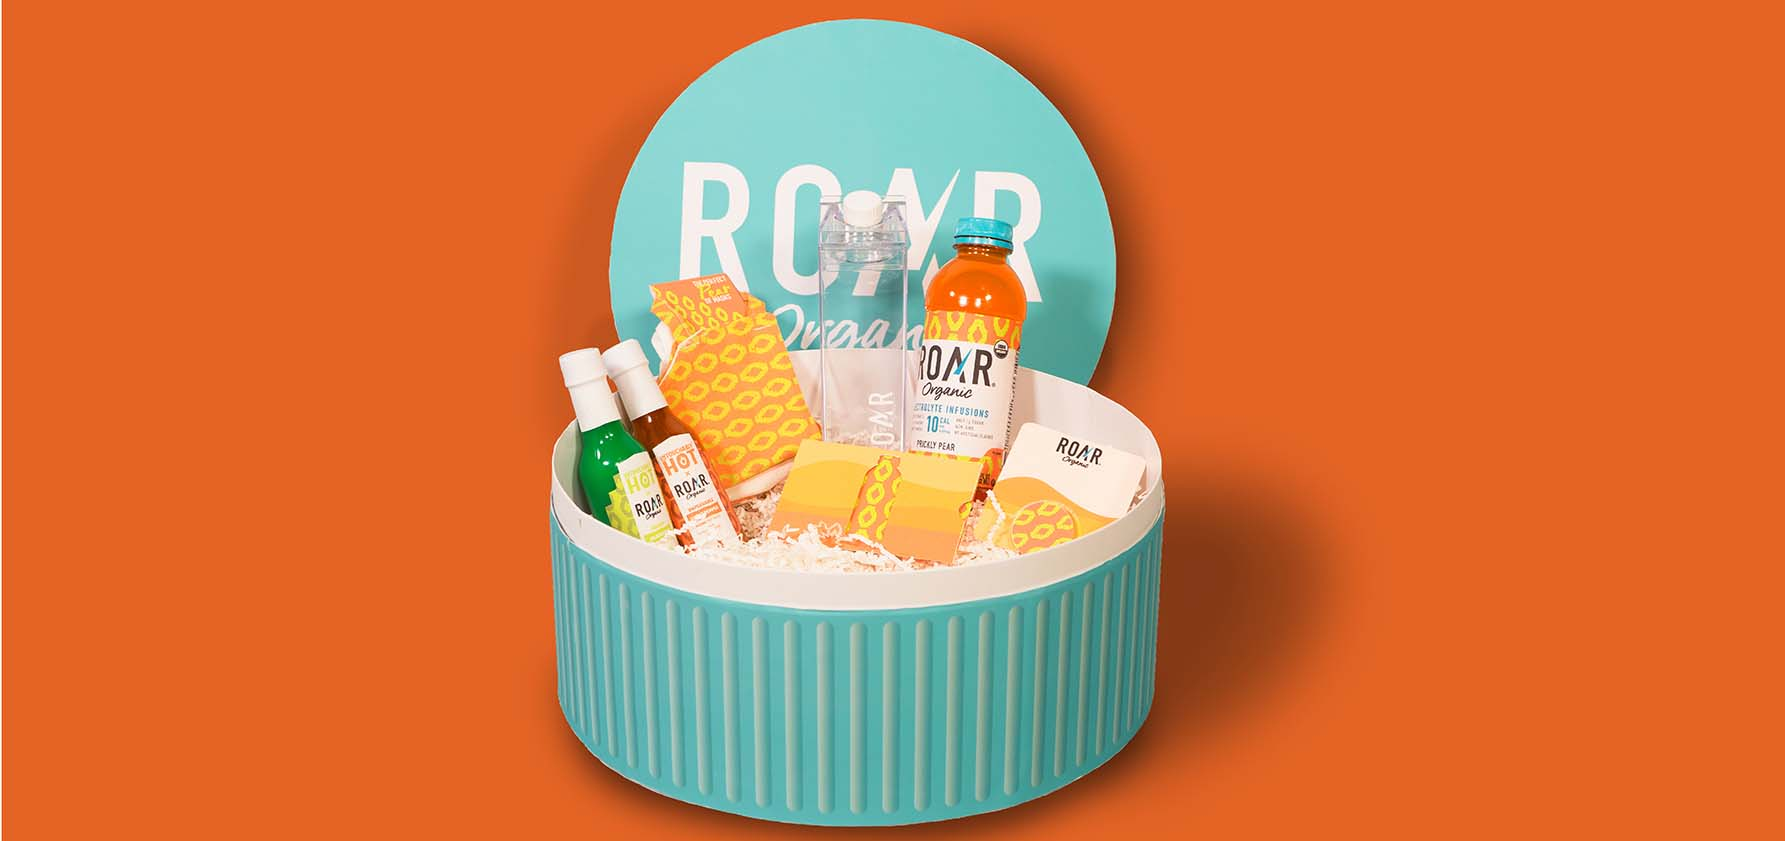 The packaging created for the Roar Organics brand by graphic design students Trey Adams '21 and Skylar Vaughan '21.